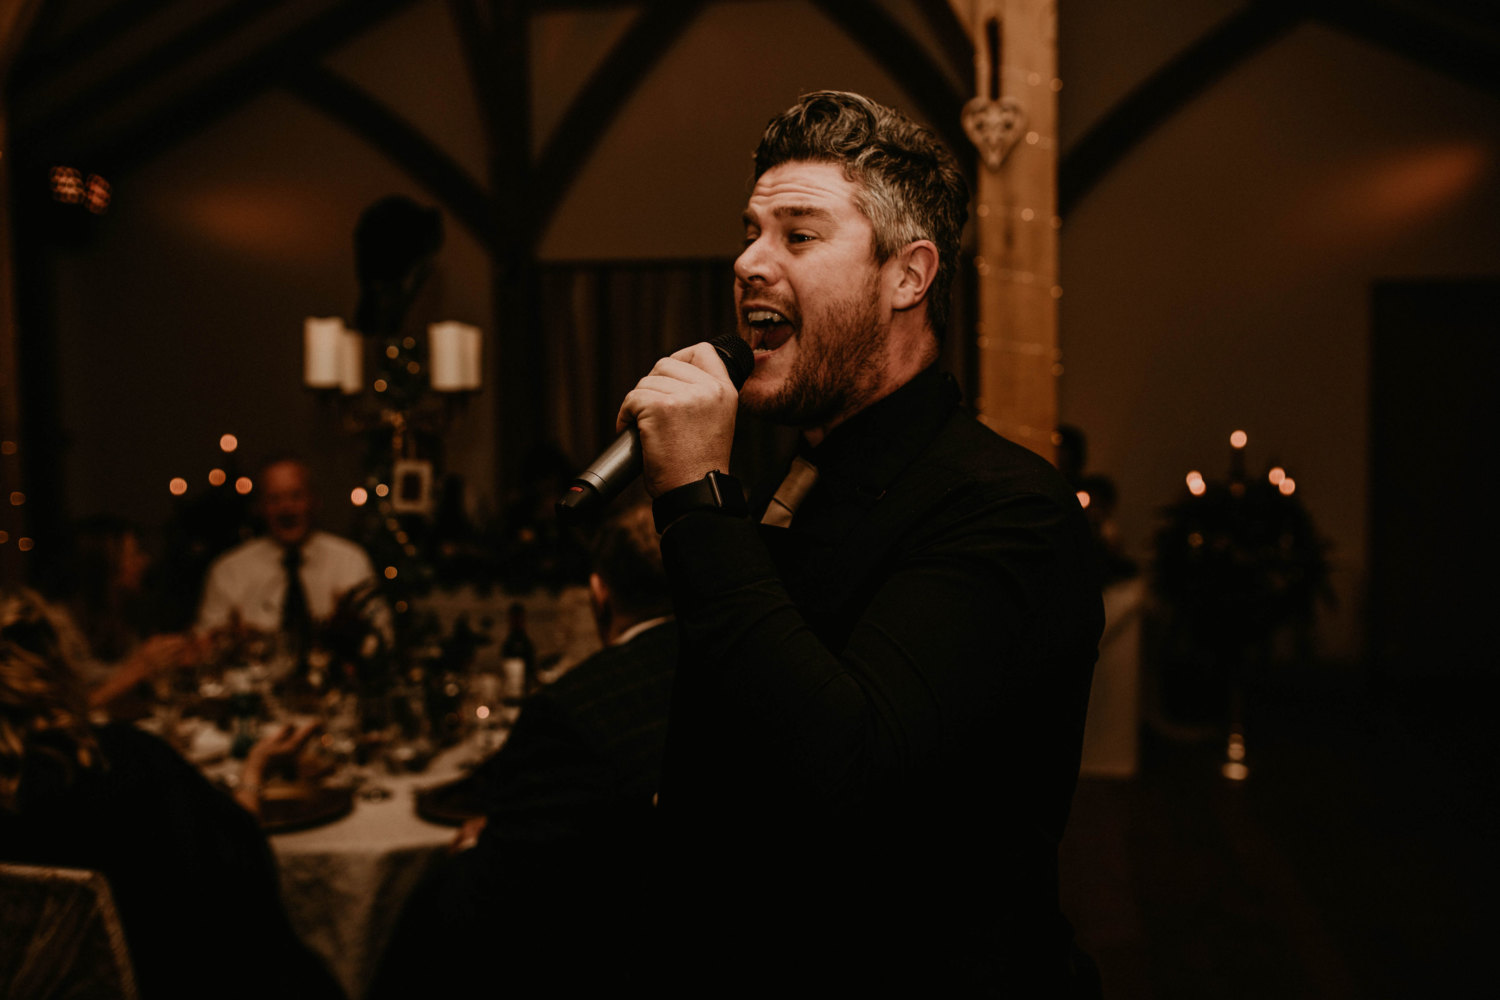 Man singing into a microphone